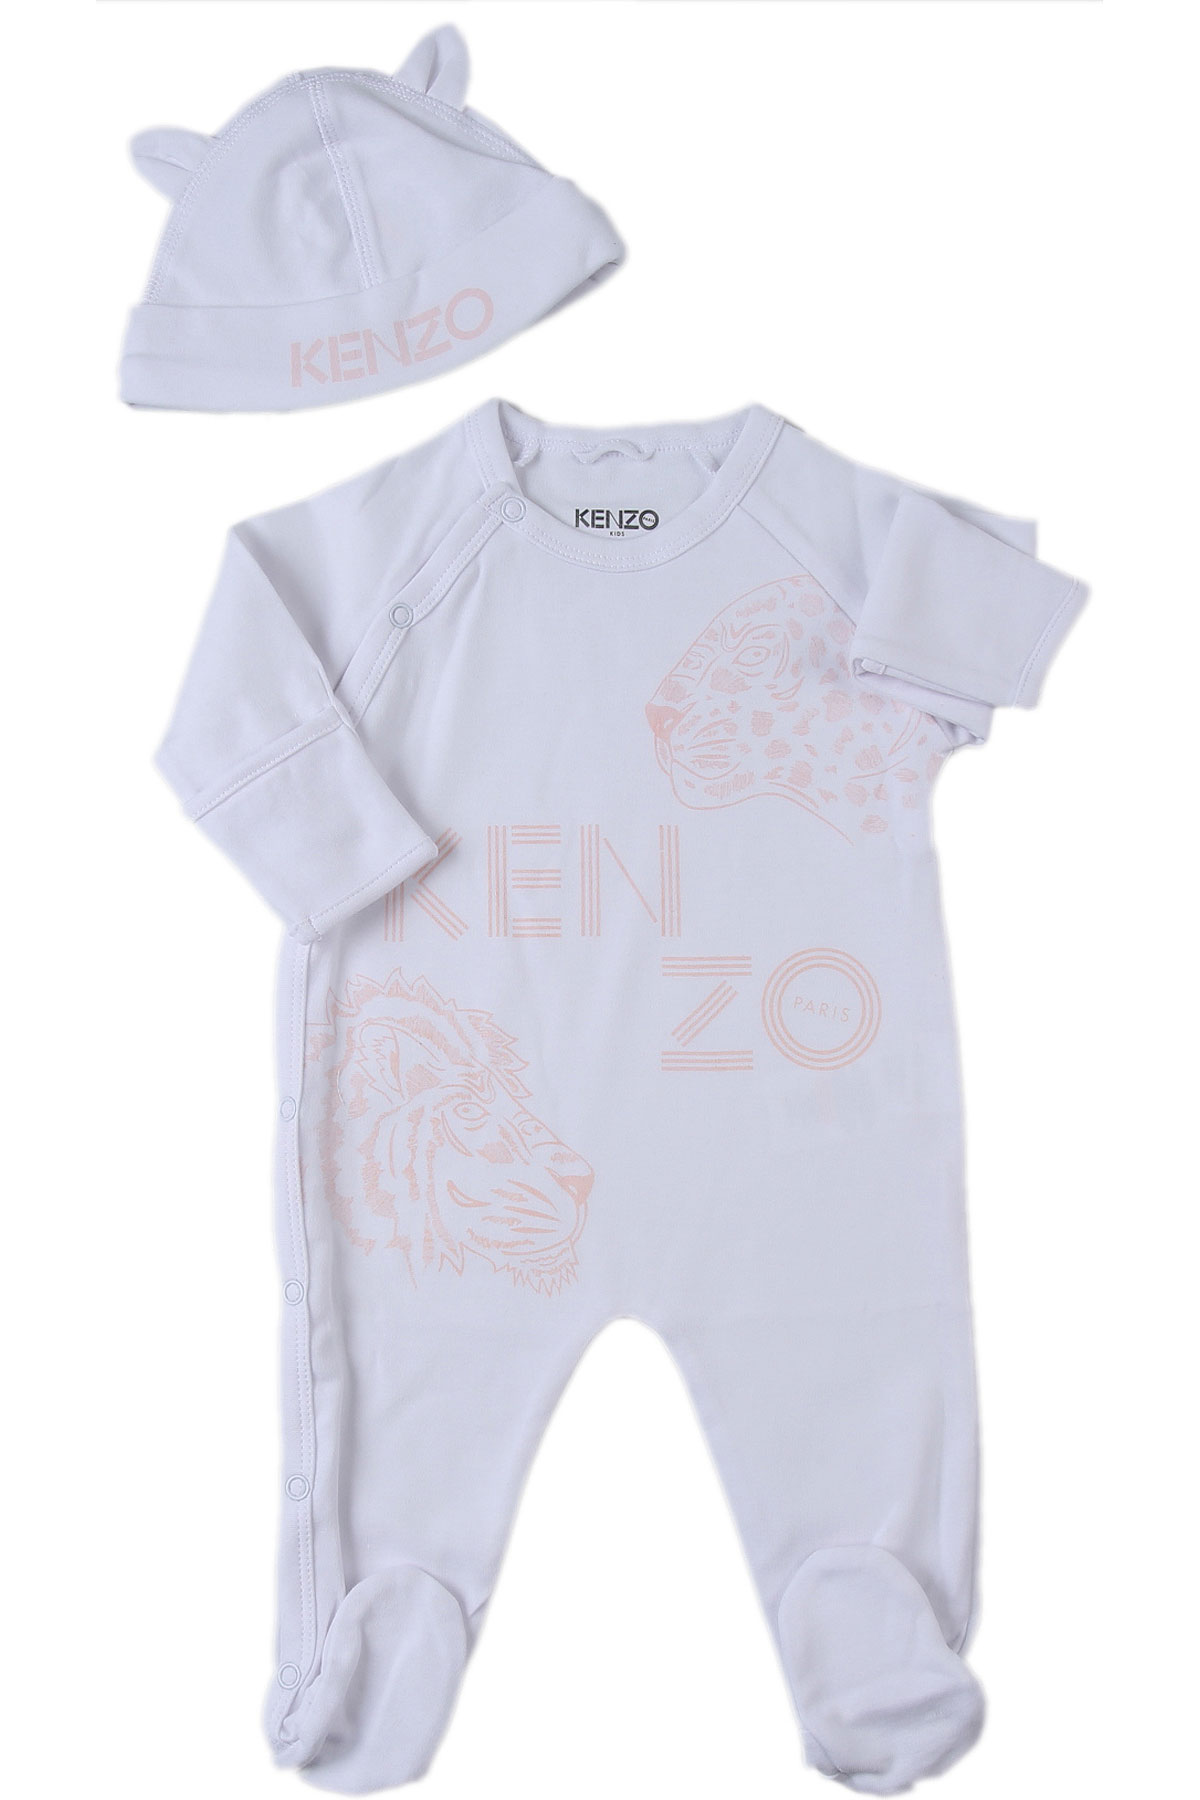 Kenzo Baby Bodysuits & Onesies for Girls On Sale, White, Cotton, 2019, 1M 3M